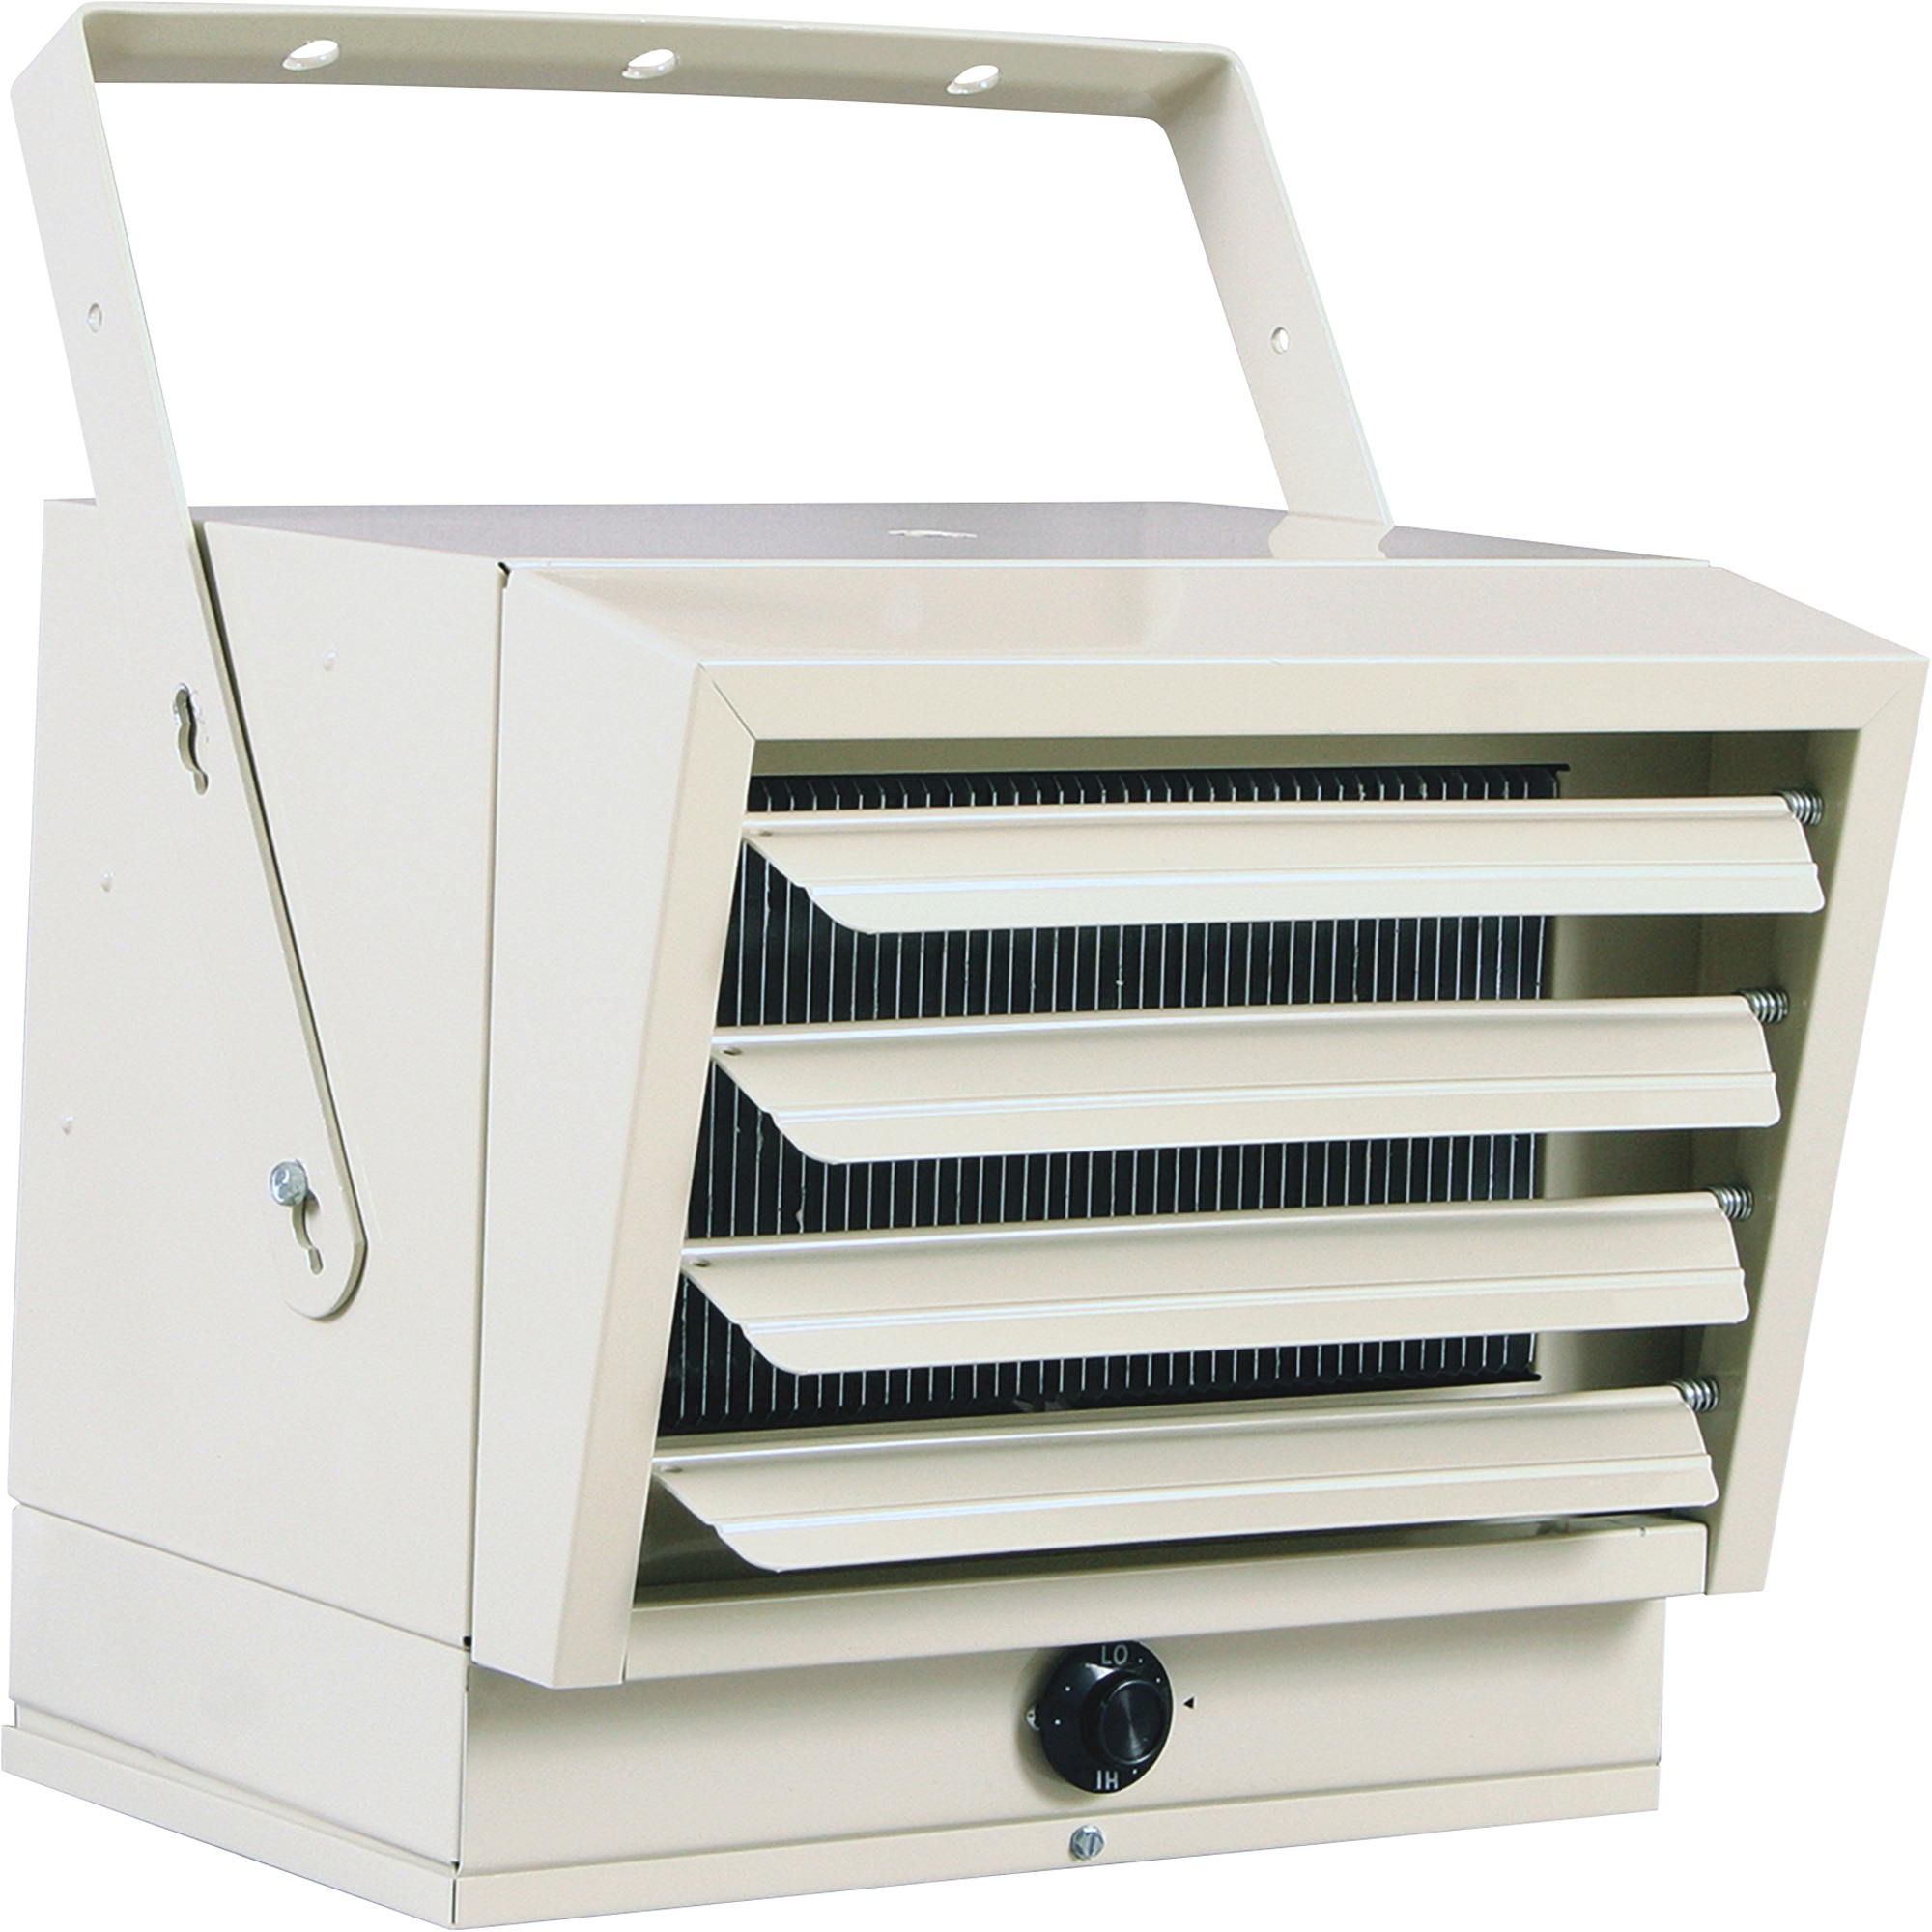 Fahrenheat Ceiling Mount Industrial Heater - Equipped with a ceiling mounting bracket for multiple flow position options